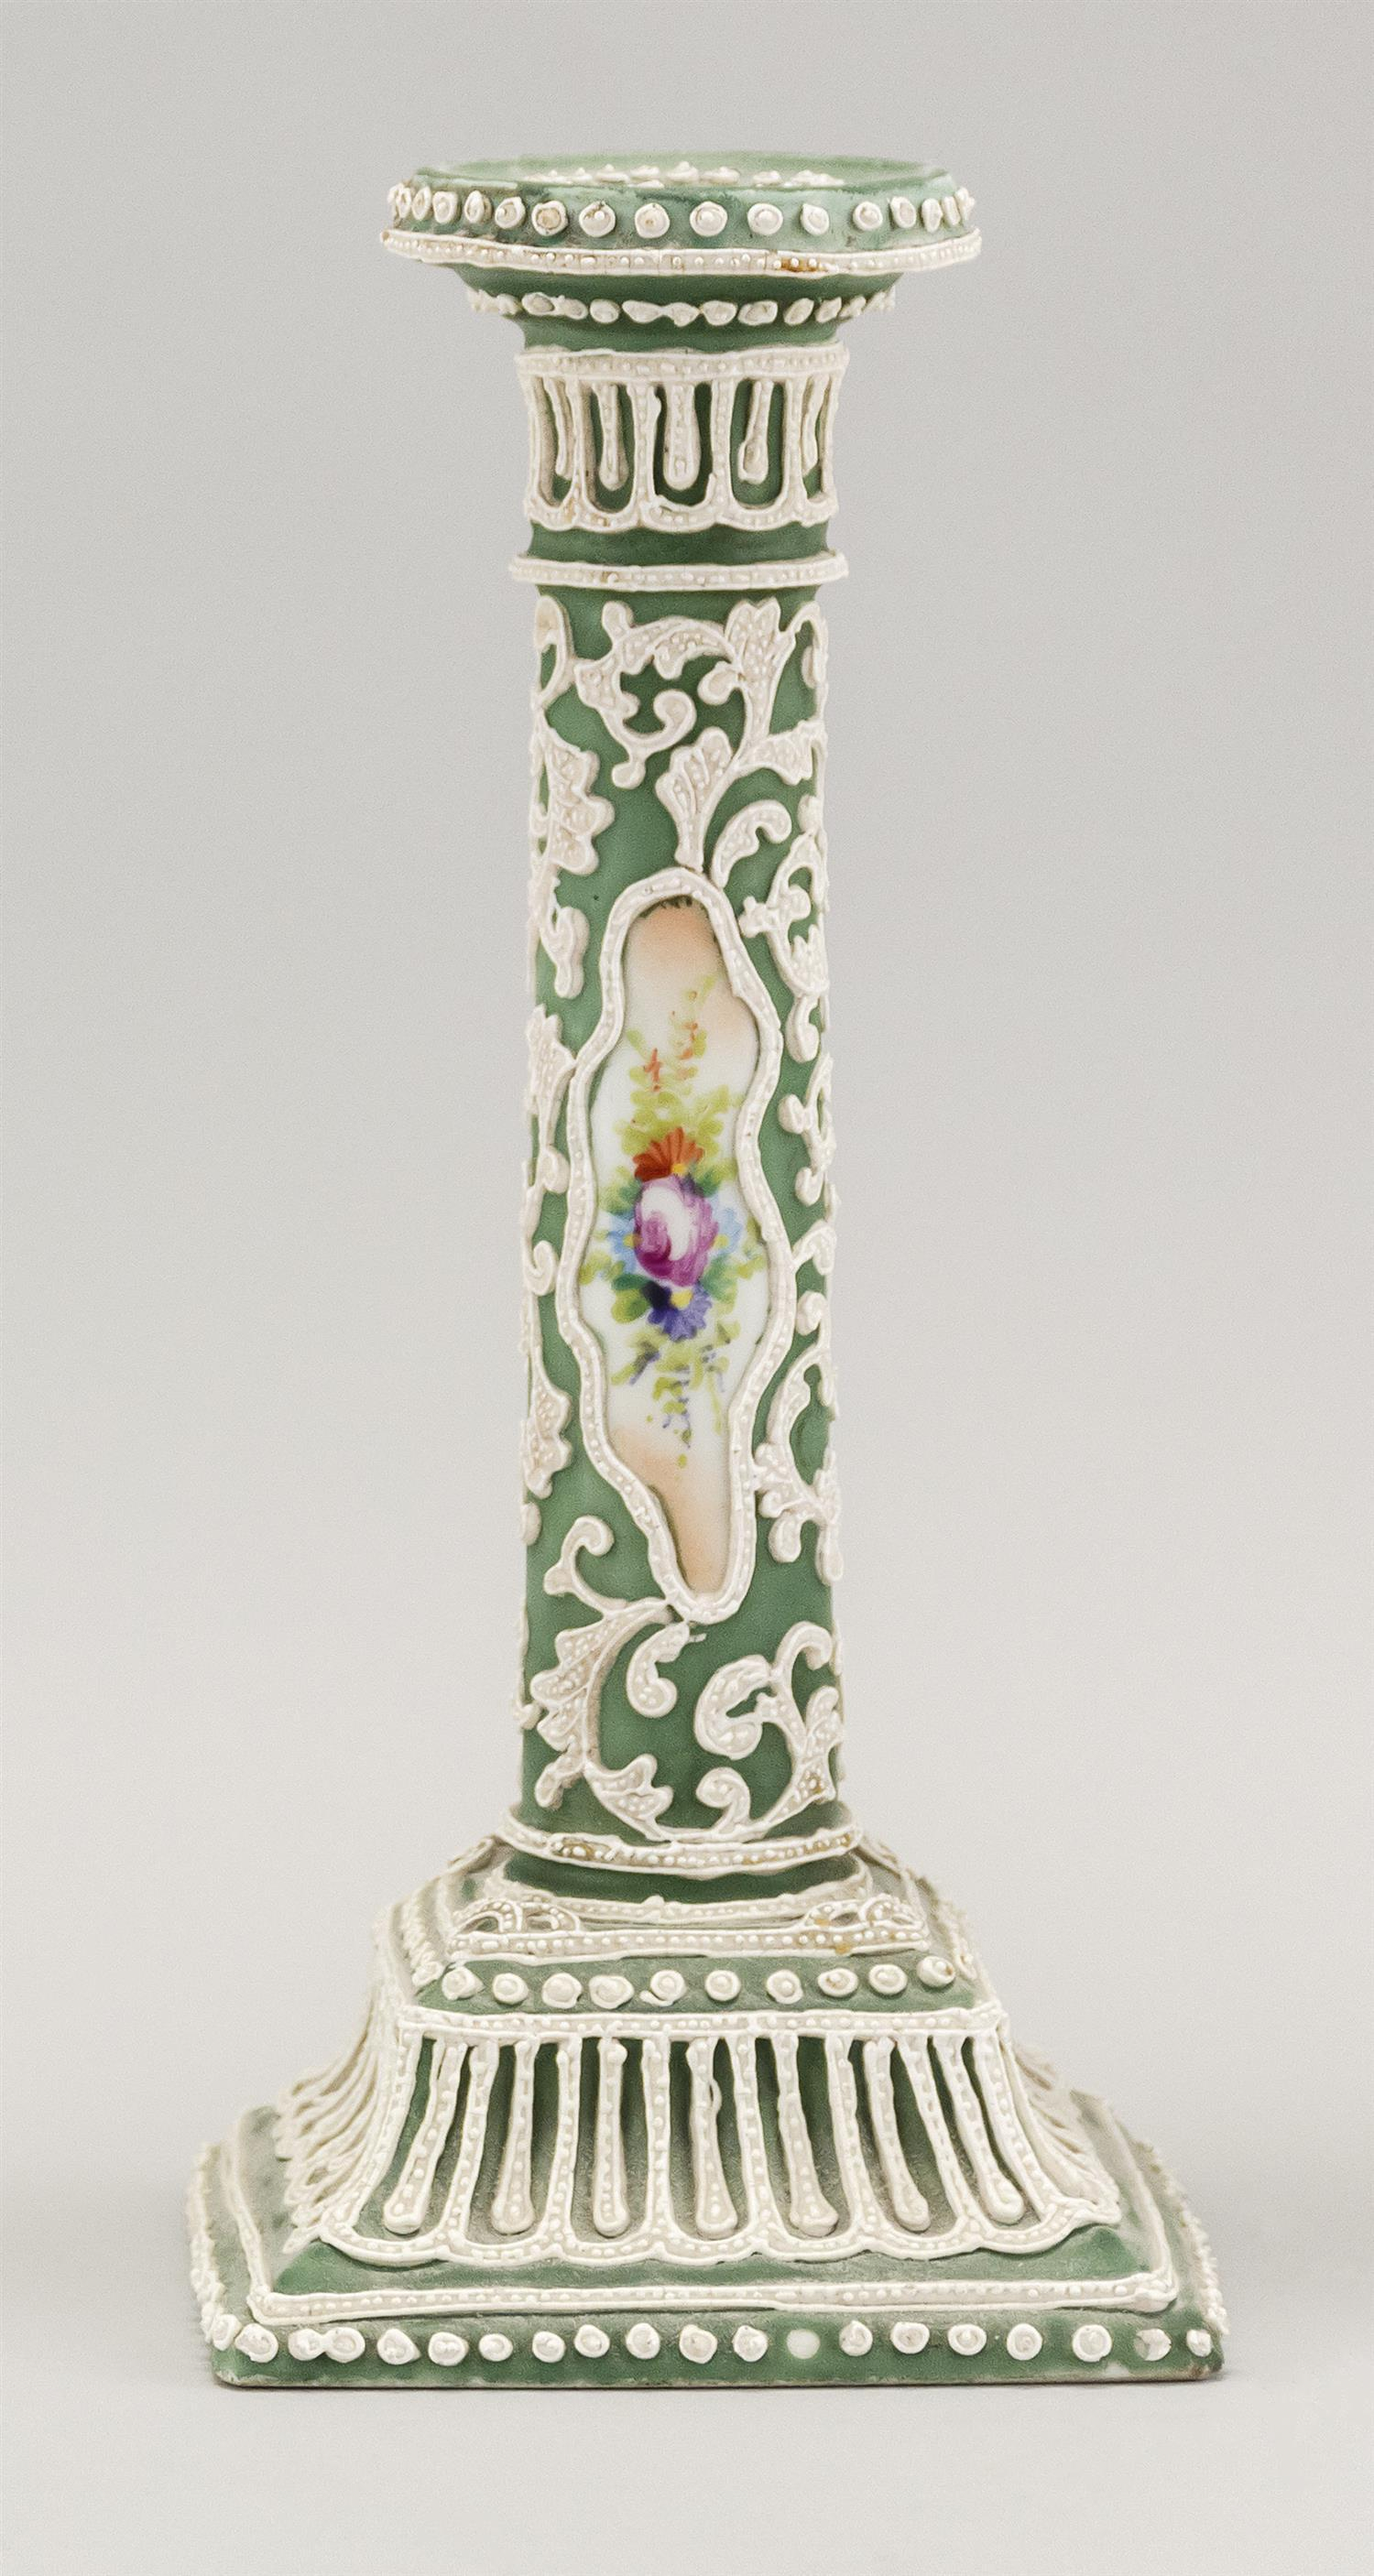 """MORIAGE NIPPON PORCELAIN CANDLESTICK With floral cartouches on a green and white ground. Height 9.5""""."""